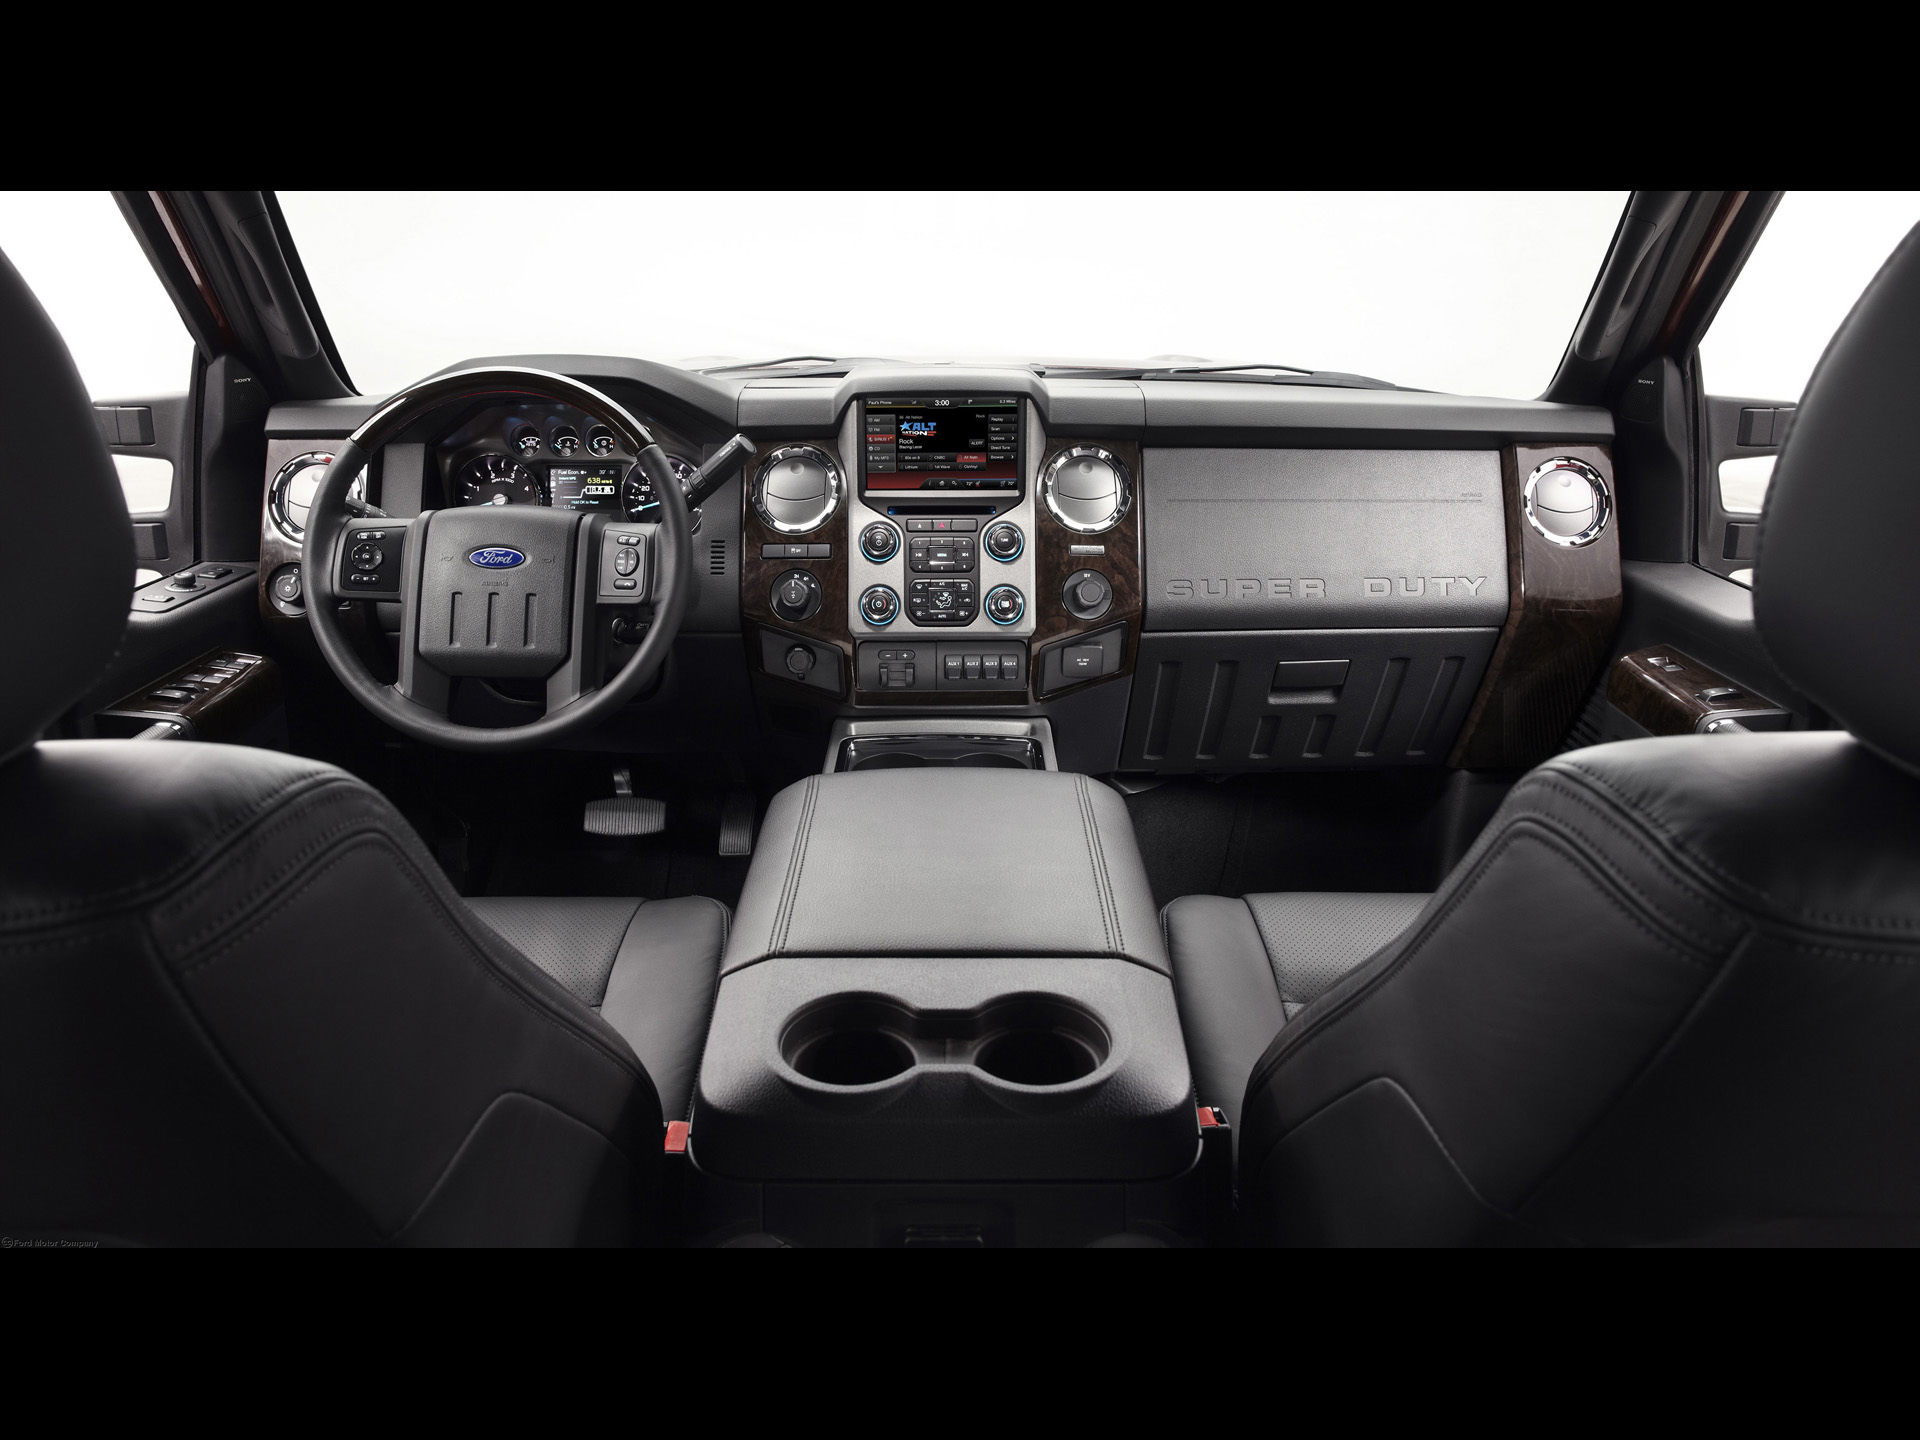 Va Ba Bfada Eb F Ae in addition D New F Factory Sony Subwoofer Upgrade W   Screen Shot Pm in addition N moreover Fd also . on 2018 ford f 150 platinum